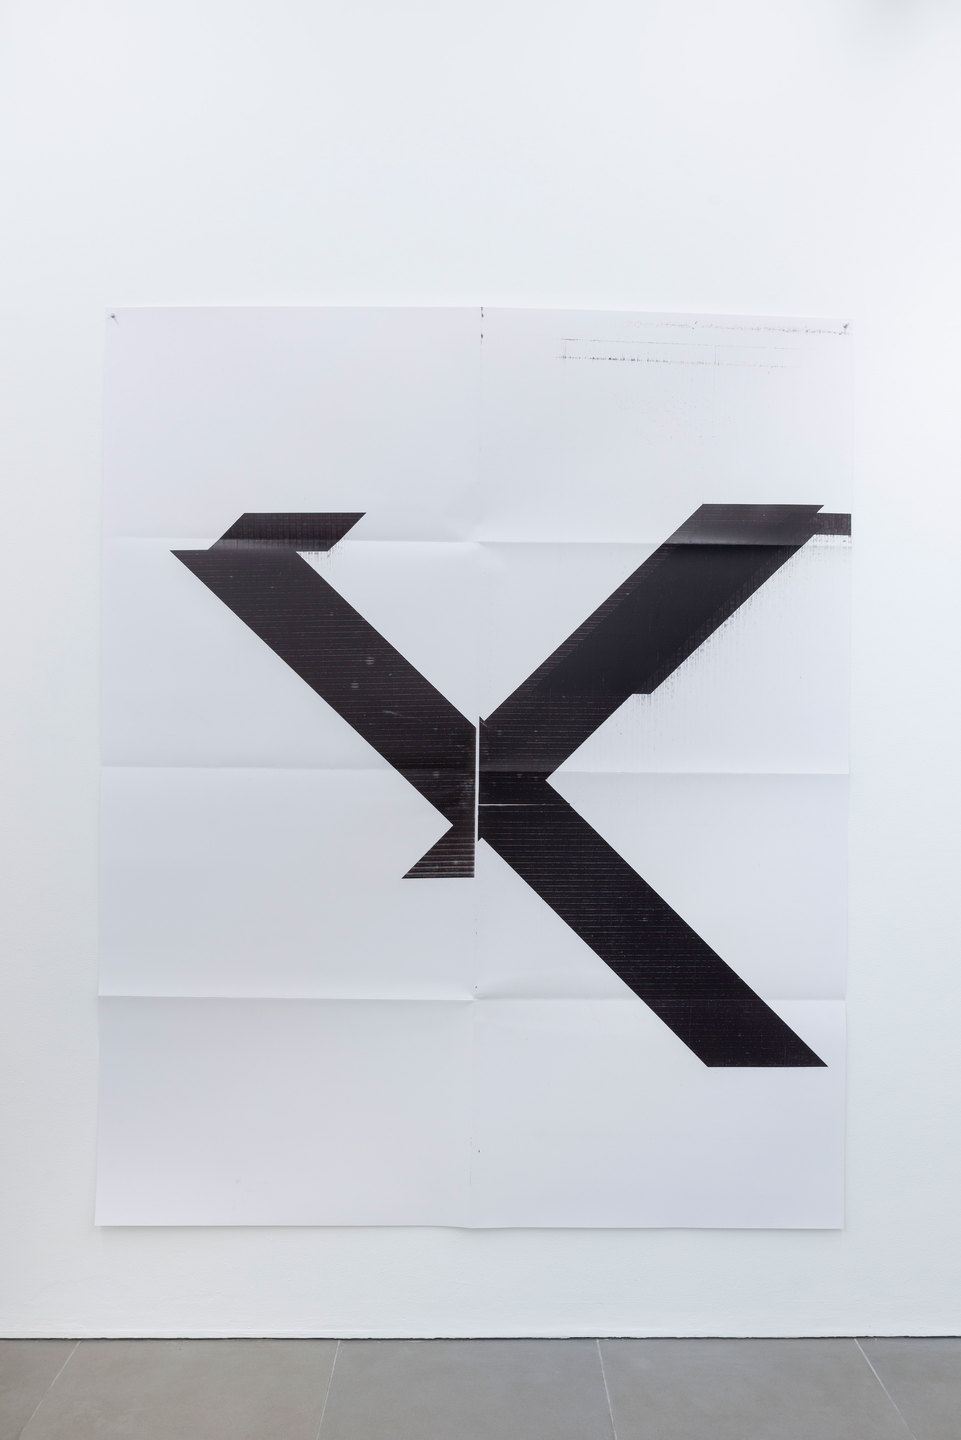 Wade Guyton Angled, 2013, Silk screen Print, 61 cm x 92 cm x 1.3 cm, Cell Project Space